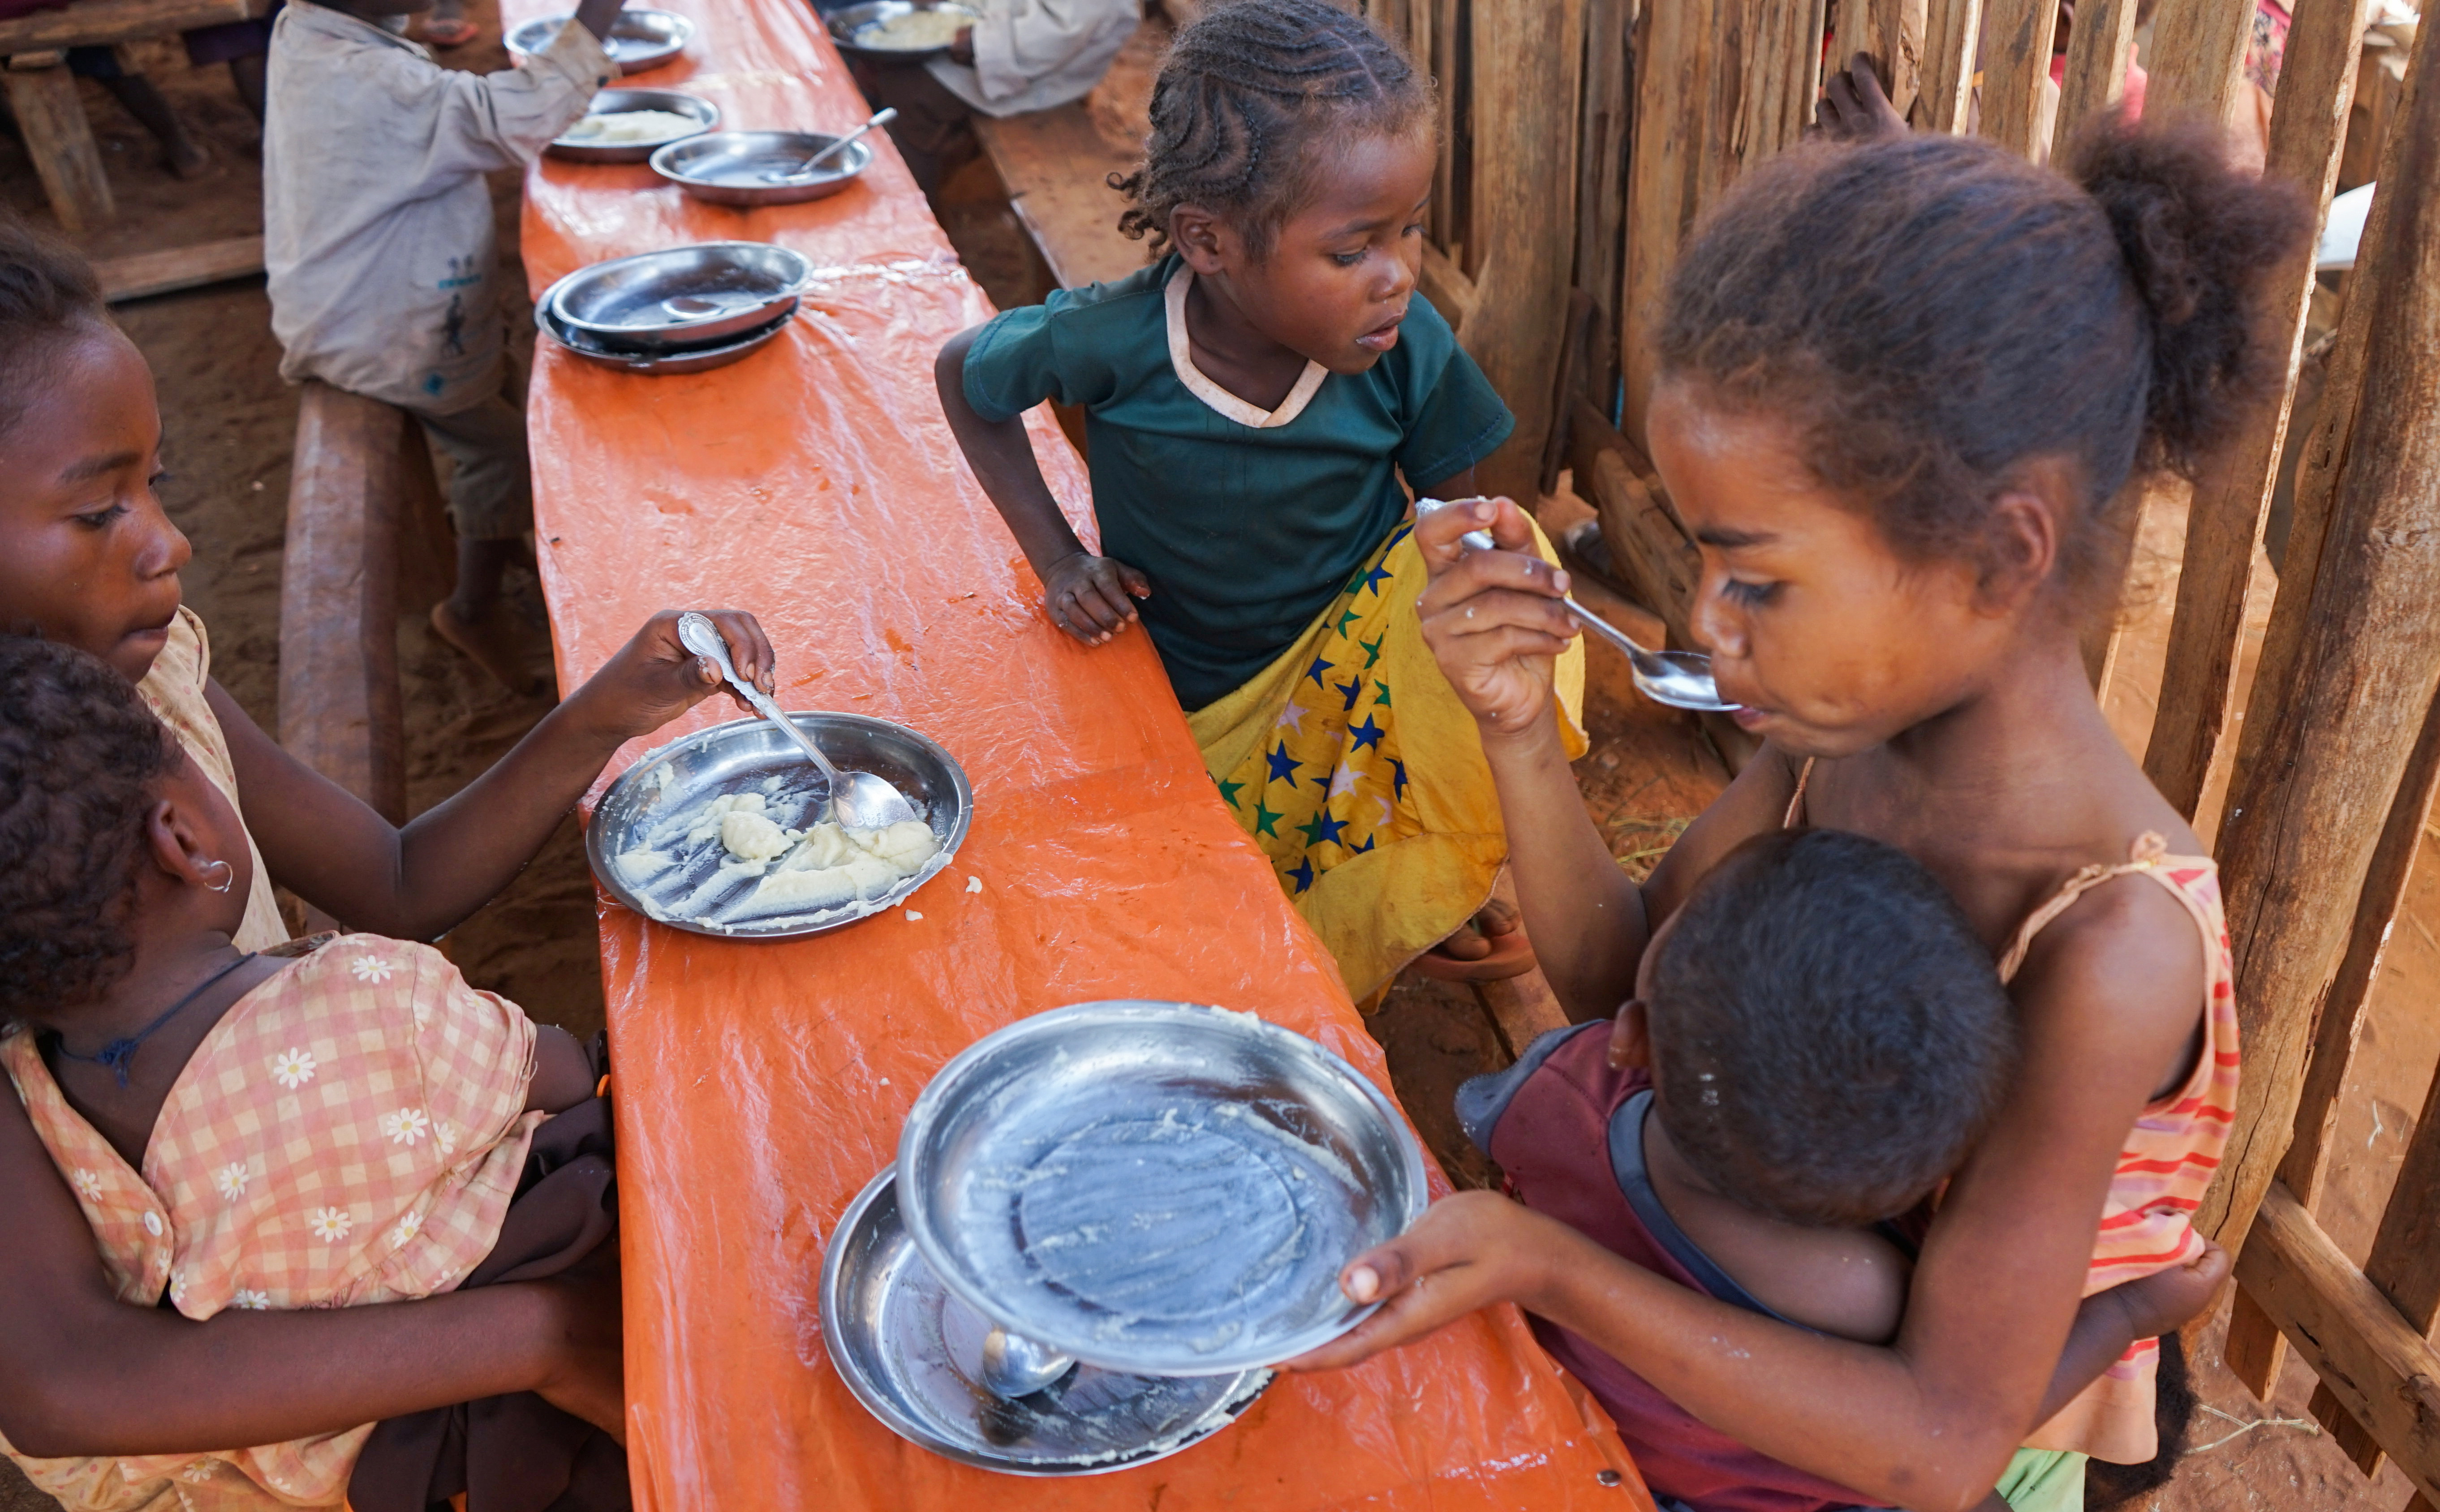 Malagasy children eat a meal at the Avotse feeding program that benefits malnourished children with hot meals in Maropia Nord village in the region of Anosy, southern Madagascar September 30, 2021. REUTERS/Joel Kouam